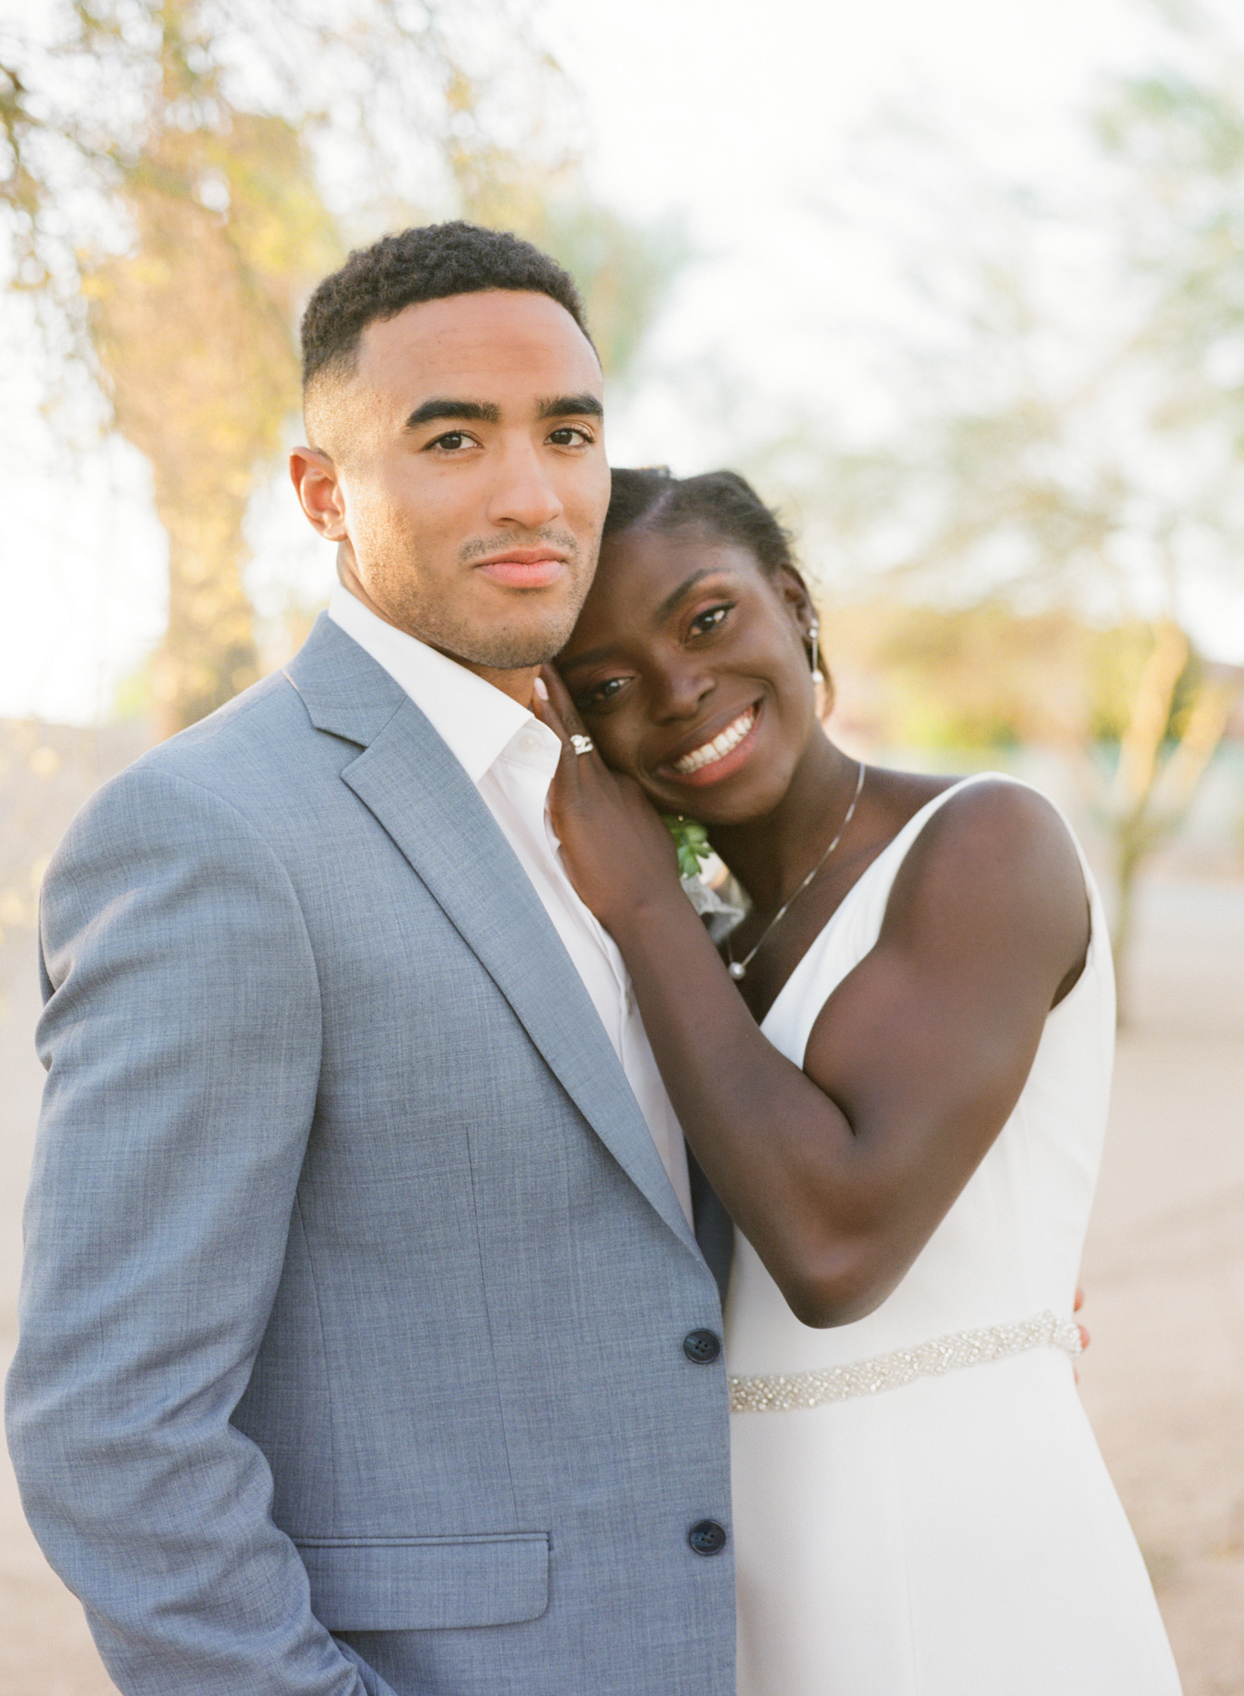 wedding couple portrait with groom in pale blue suit and bride in white